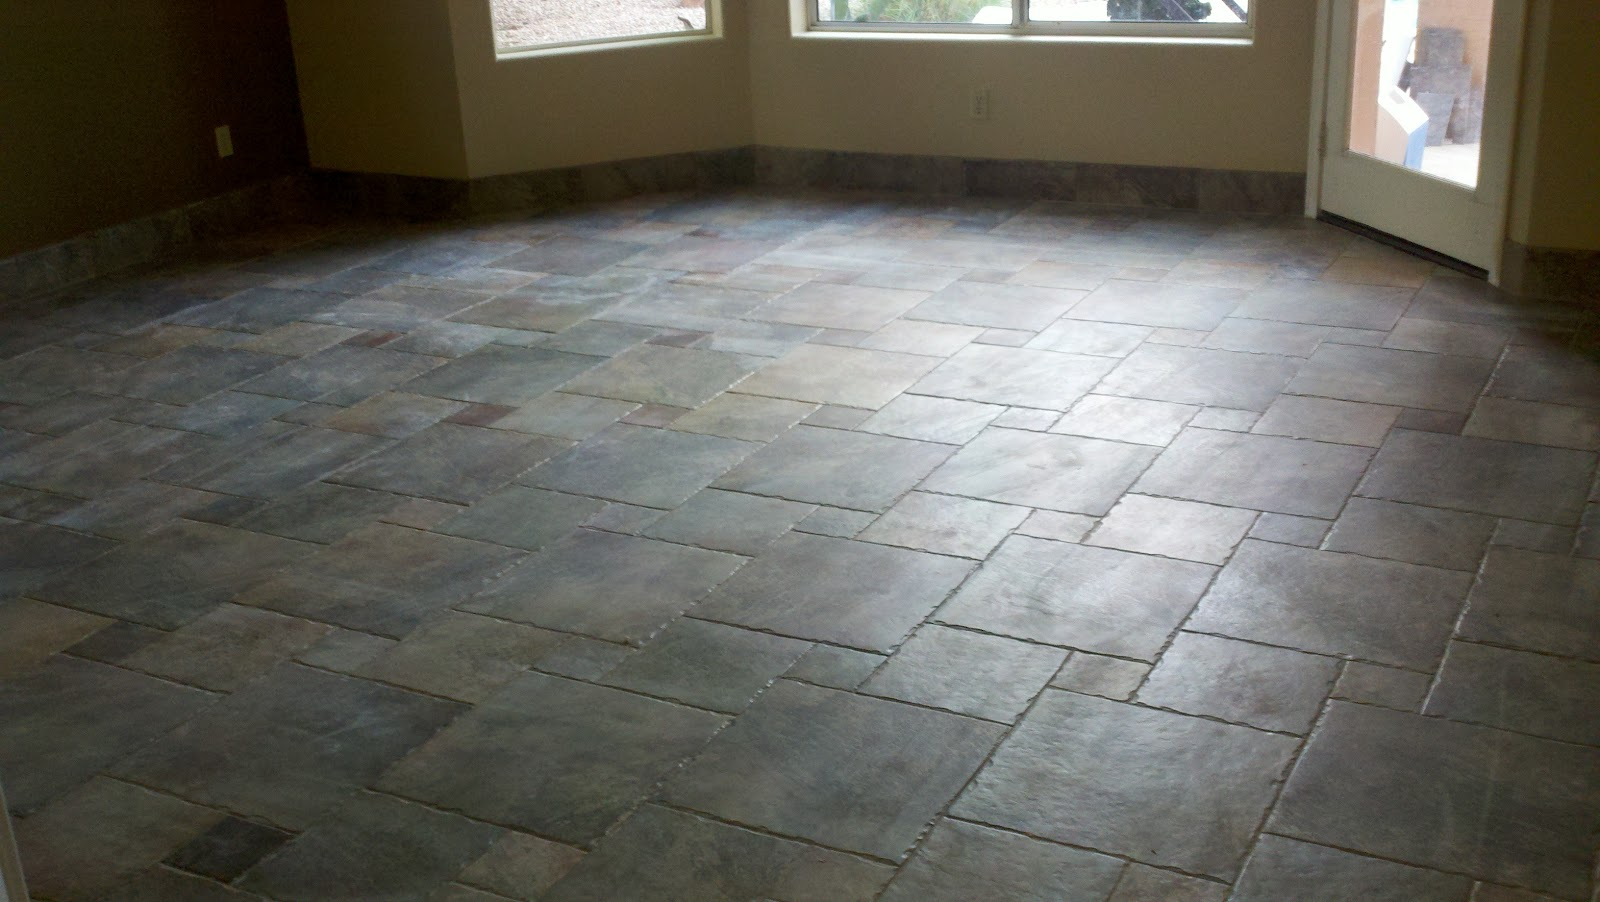 Barton tile llc porcelain tile with 20x20 6x6 and 13x13 tile pattern porcelain tile with 20x20 6x6 and 13x13 tile pattern dailygadgetfo Choice Image